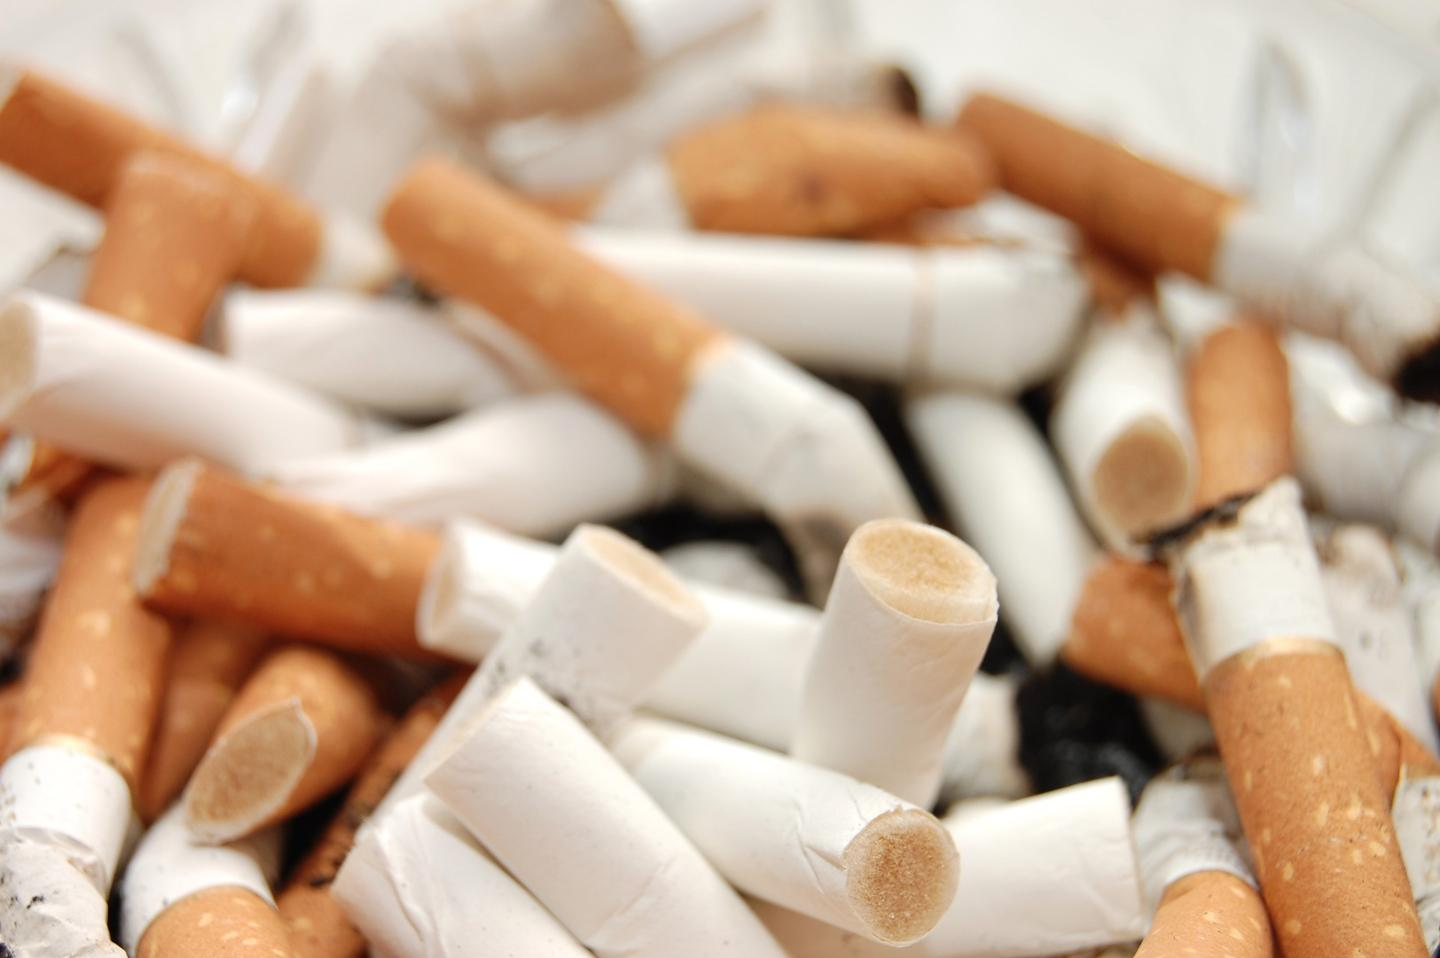 Discarded cigarette butts could soon be locked away inside asphalt roads and paths